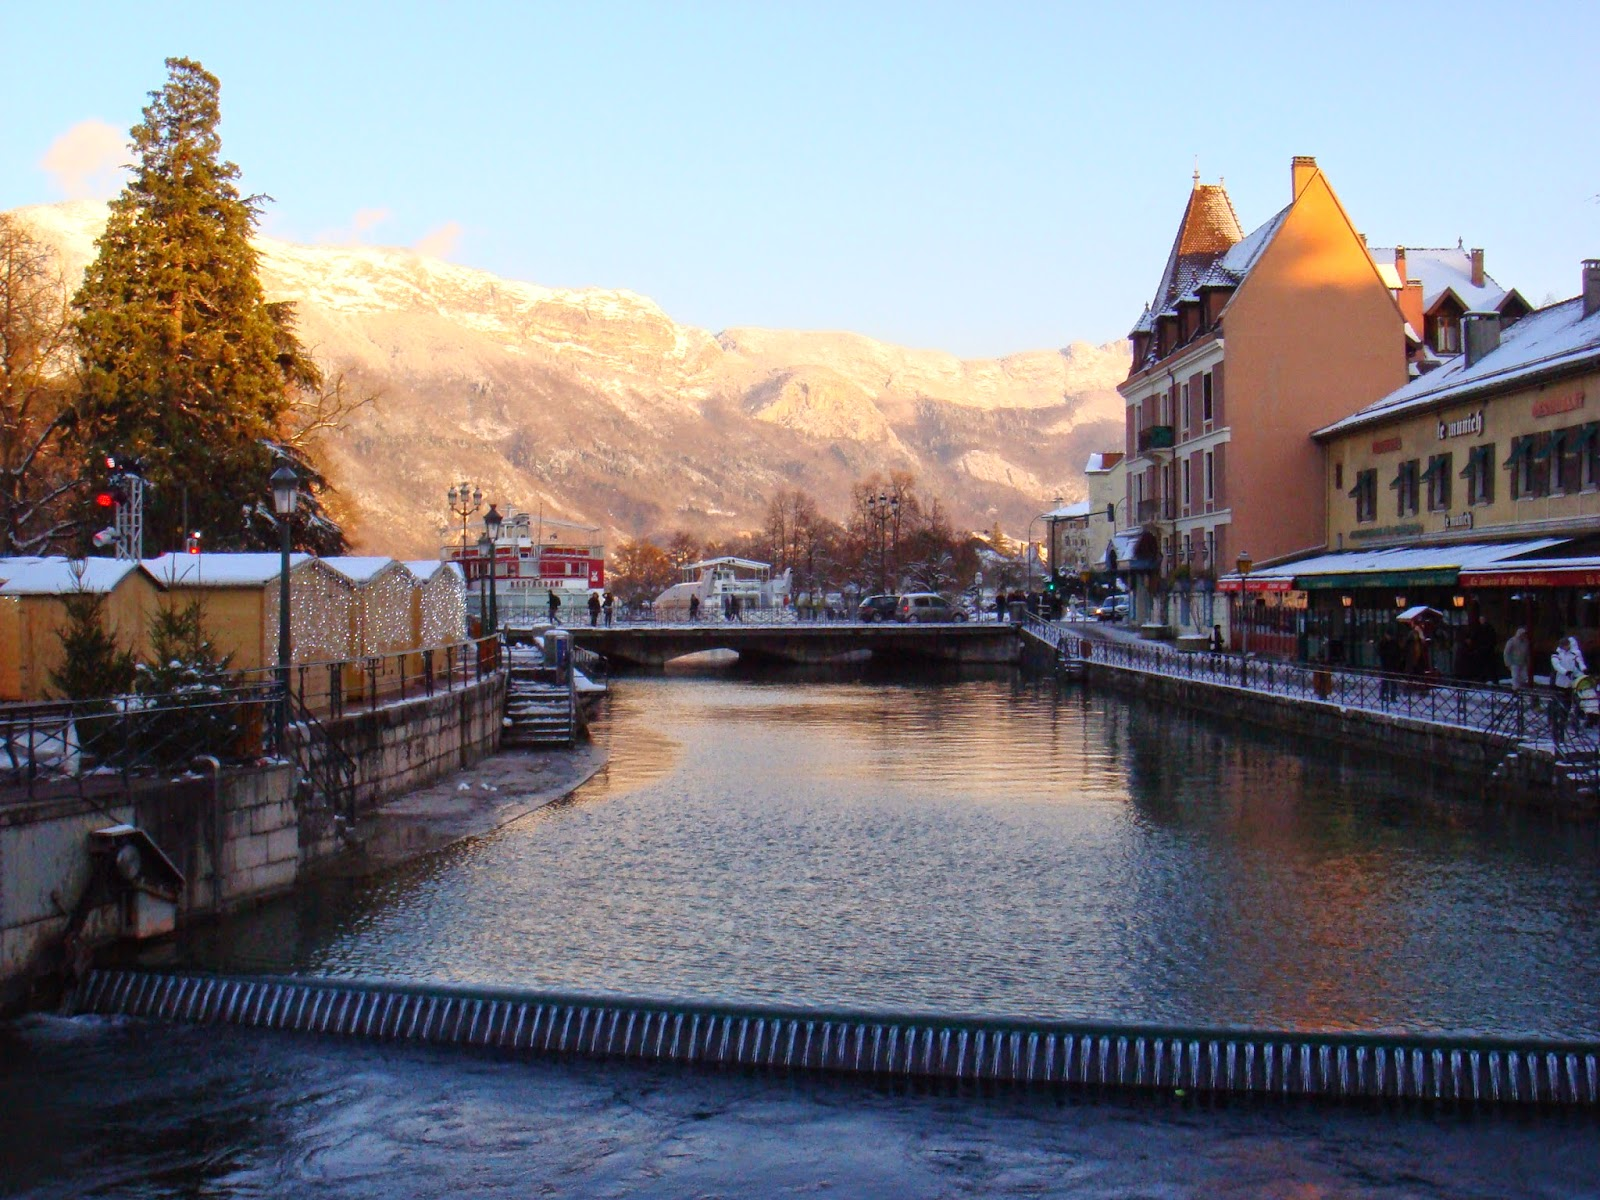 annecy cidade